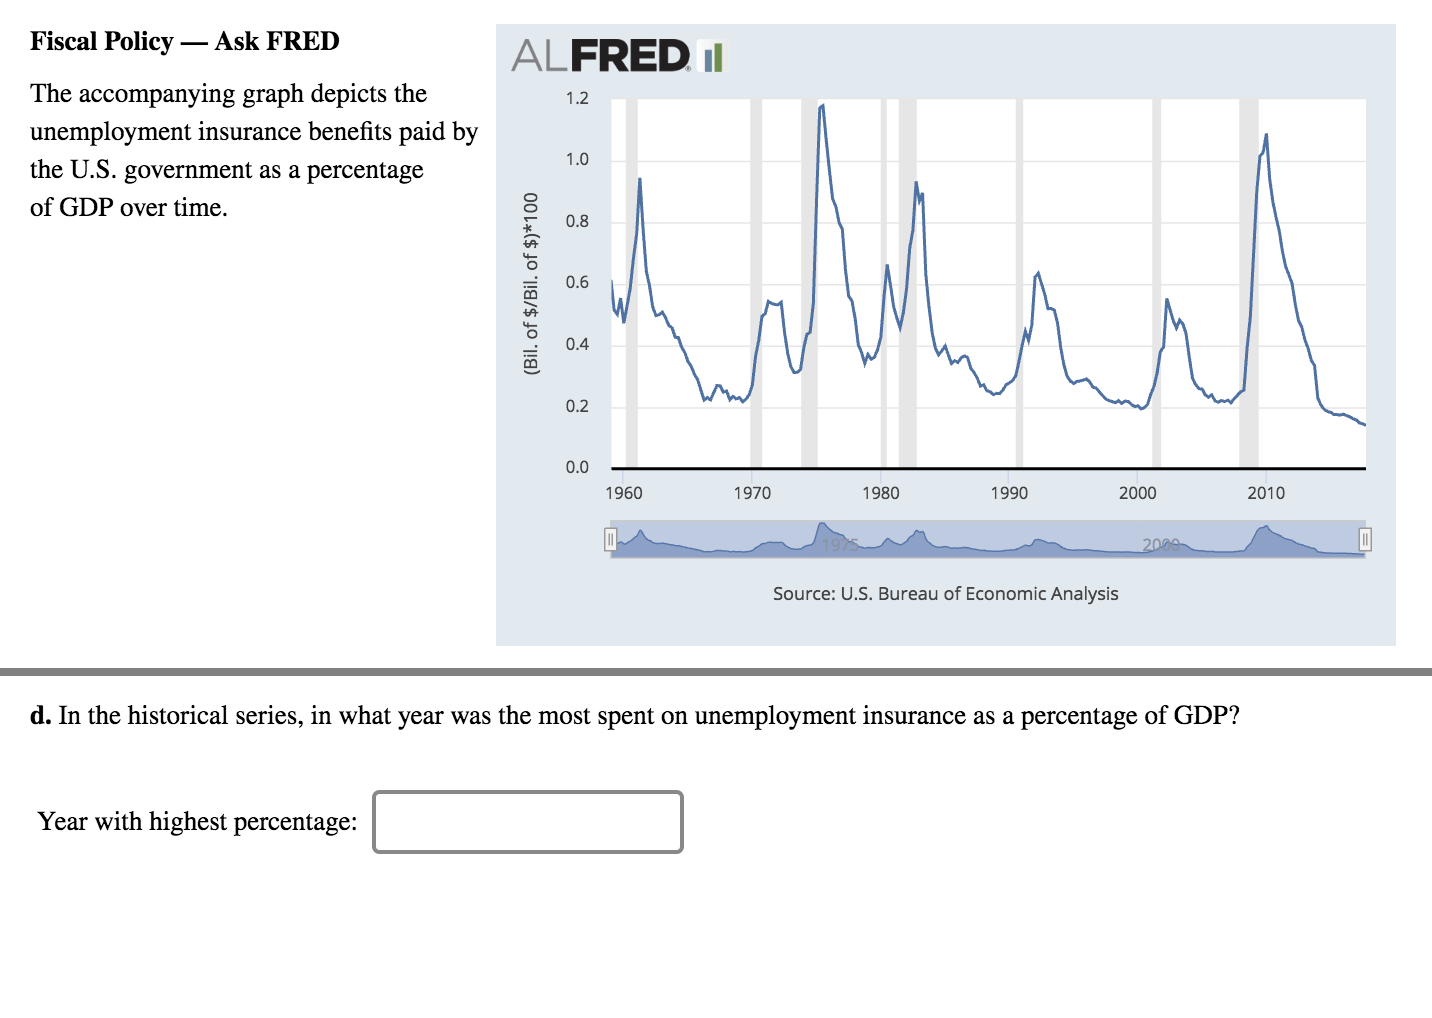 Fiscal Policy- Ask FRED The accompanying graph depicts the unemployment insurance benefits paid by the U.S. government as a percentage ALFRED 1.2 1.0 of GDP over time. 0.8 0.6 0.4 0.2 0.0 1960 1970 1980 1990 2000 2010 Source: U.S. Bureau of Economic Analysis d. In the historical series, in what year was the most spent on unemployment insurance as a percentage of GDP? Year with highest percentage: